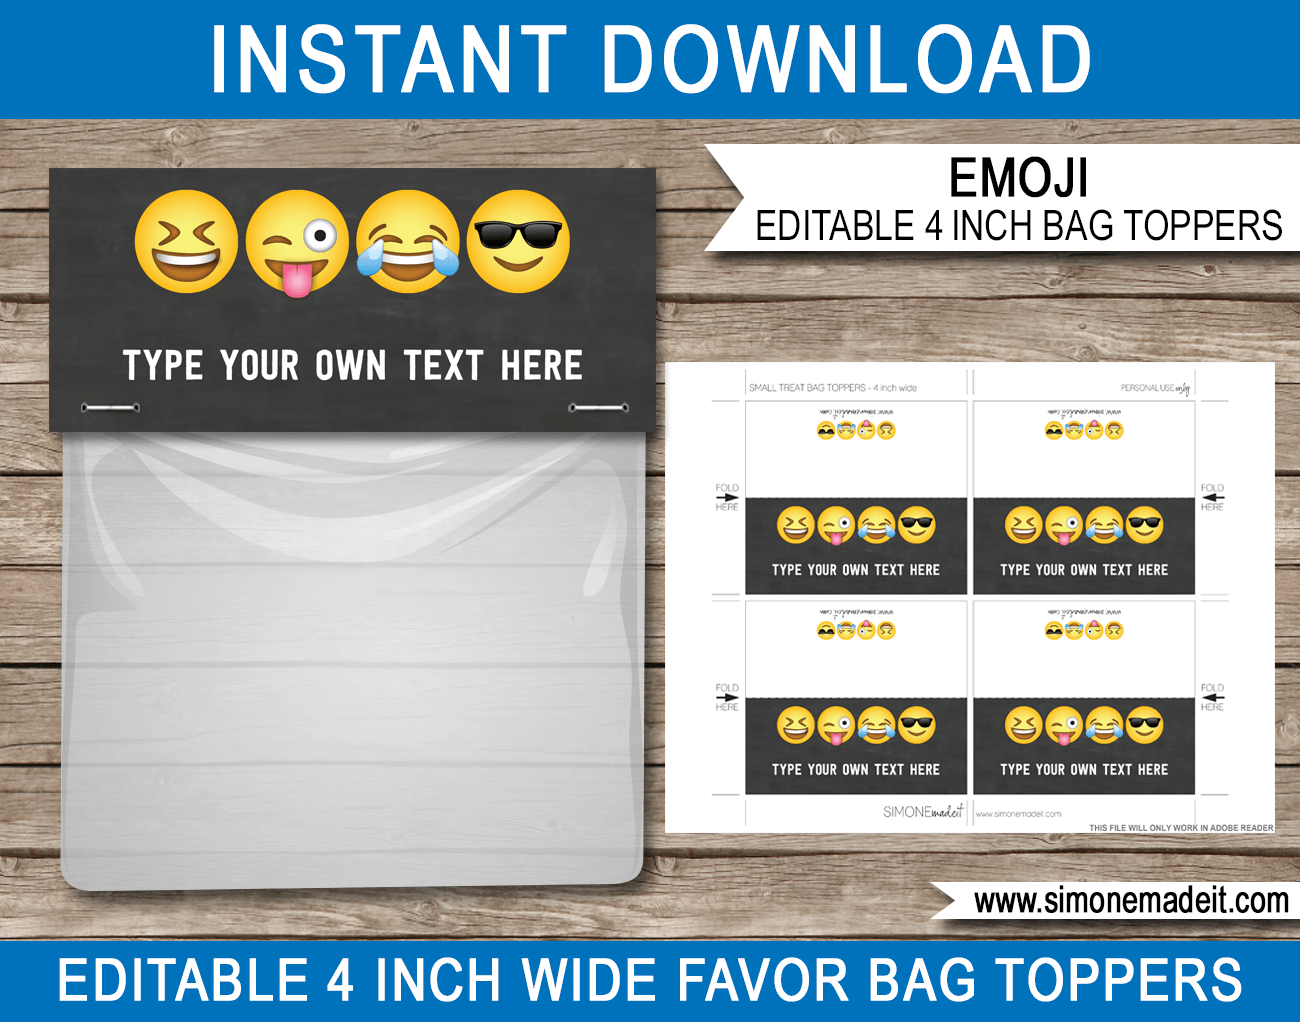 Printable pirate party decorations amp supplies free templates - Boys Emoji Theme Party Favor Bag Toppers Emoji Birthday Party Favors Printable Diy Template